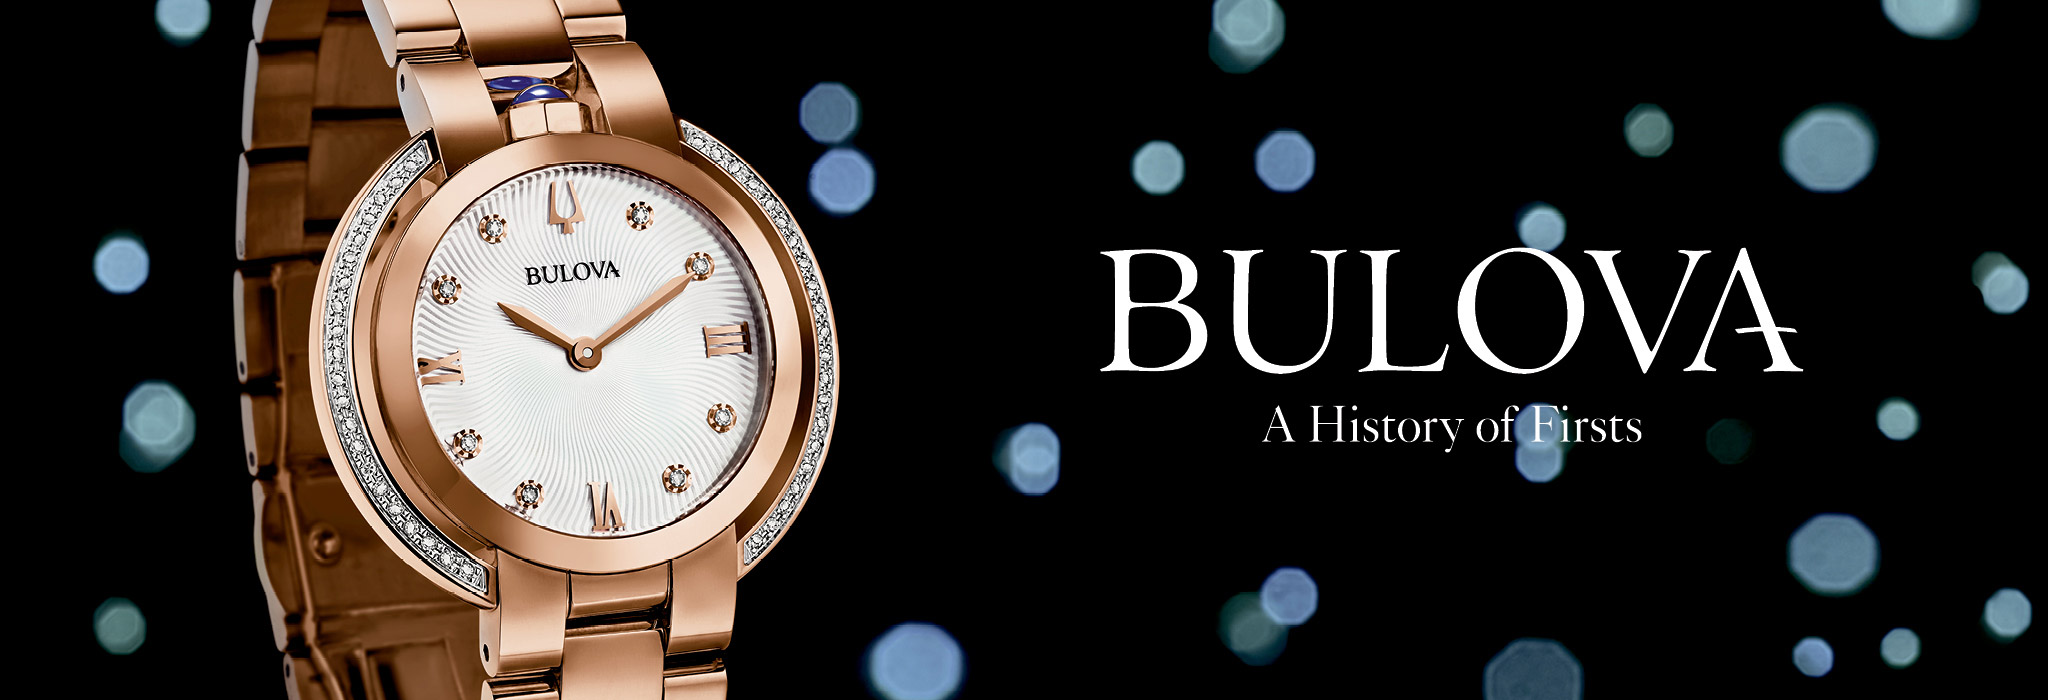 Bulova - A History of Firsts